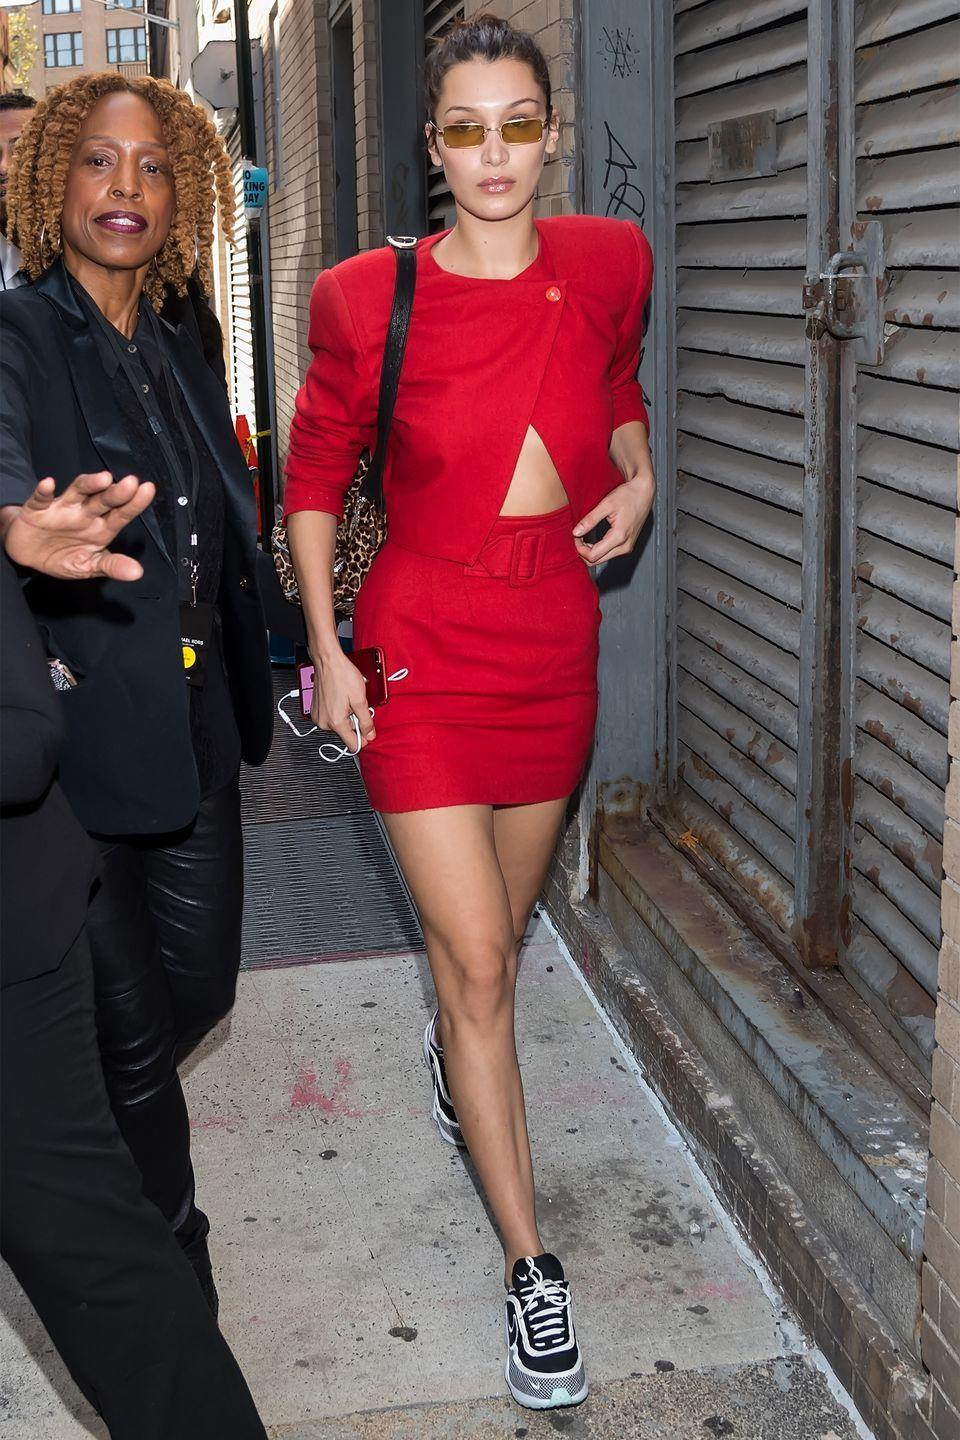 <p>In a red skirt suit, Nike Air Zoom sneakers, leopard print bag, and rectangular sunglasses while out in NYC.</p>